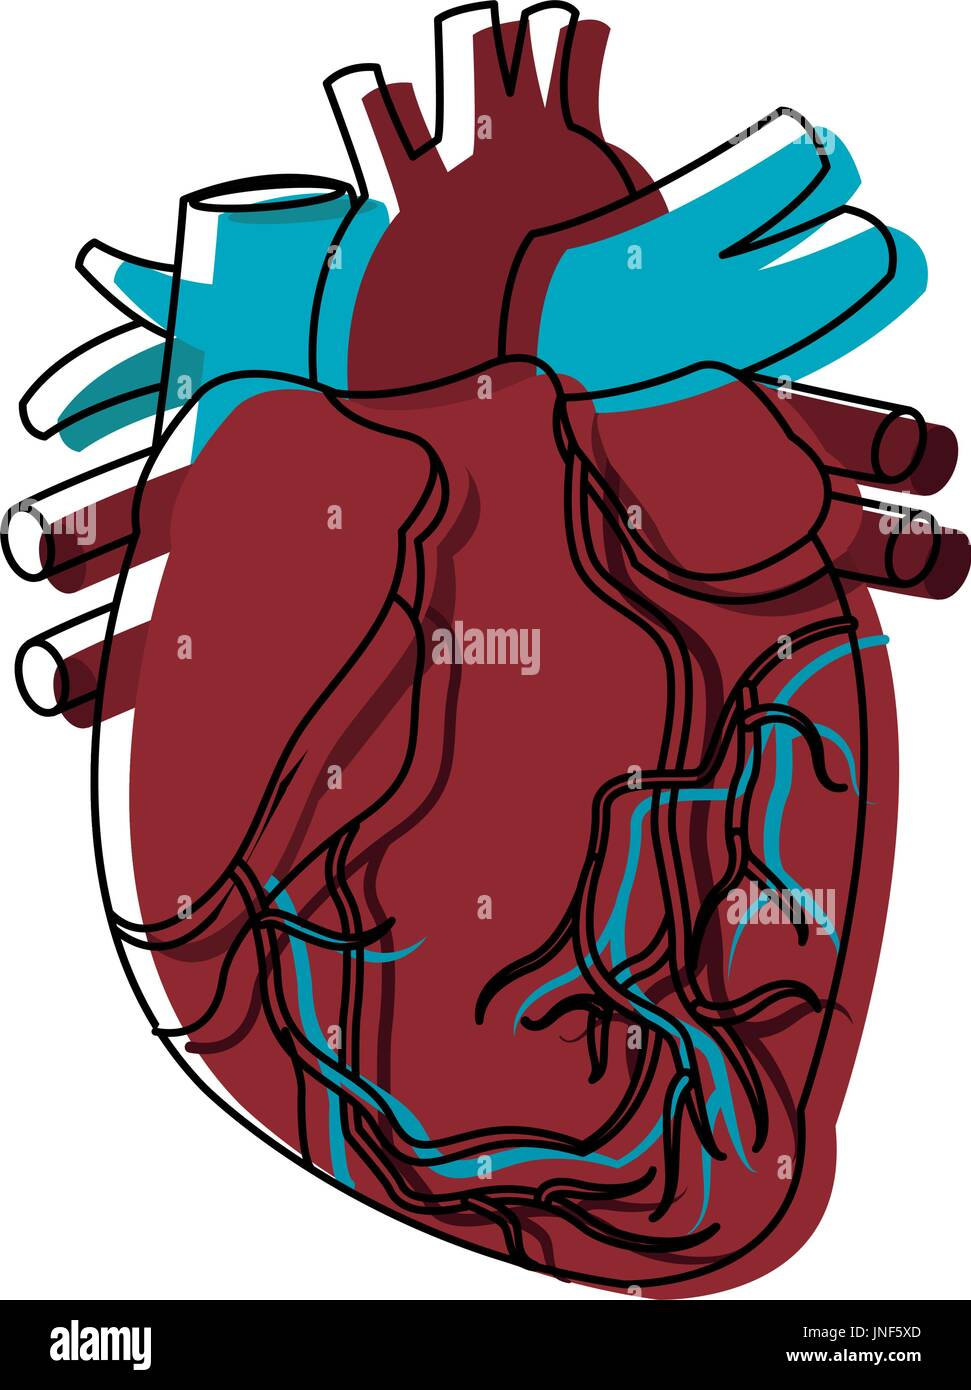 Heart Ventricle Stockfotos & Heart Ventricle Bilder - Alamy